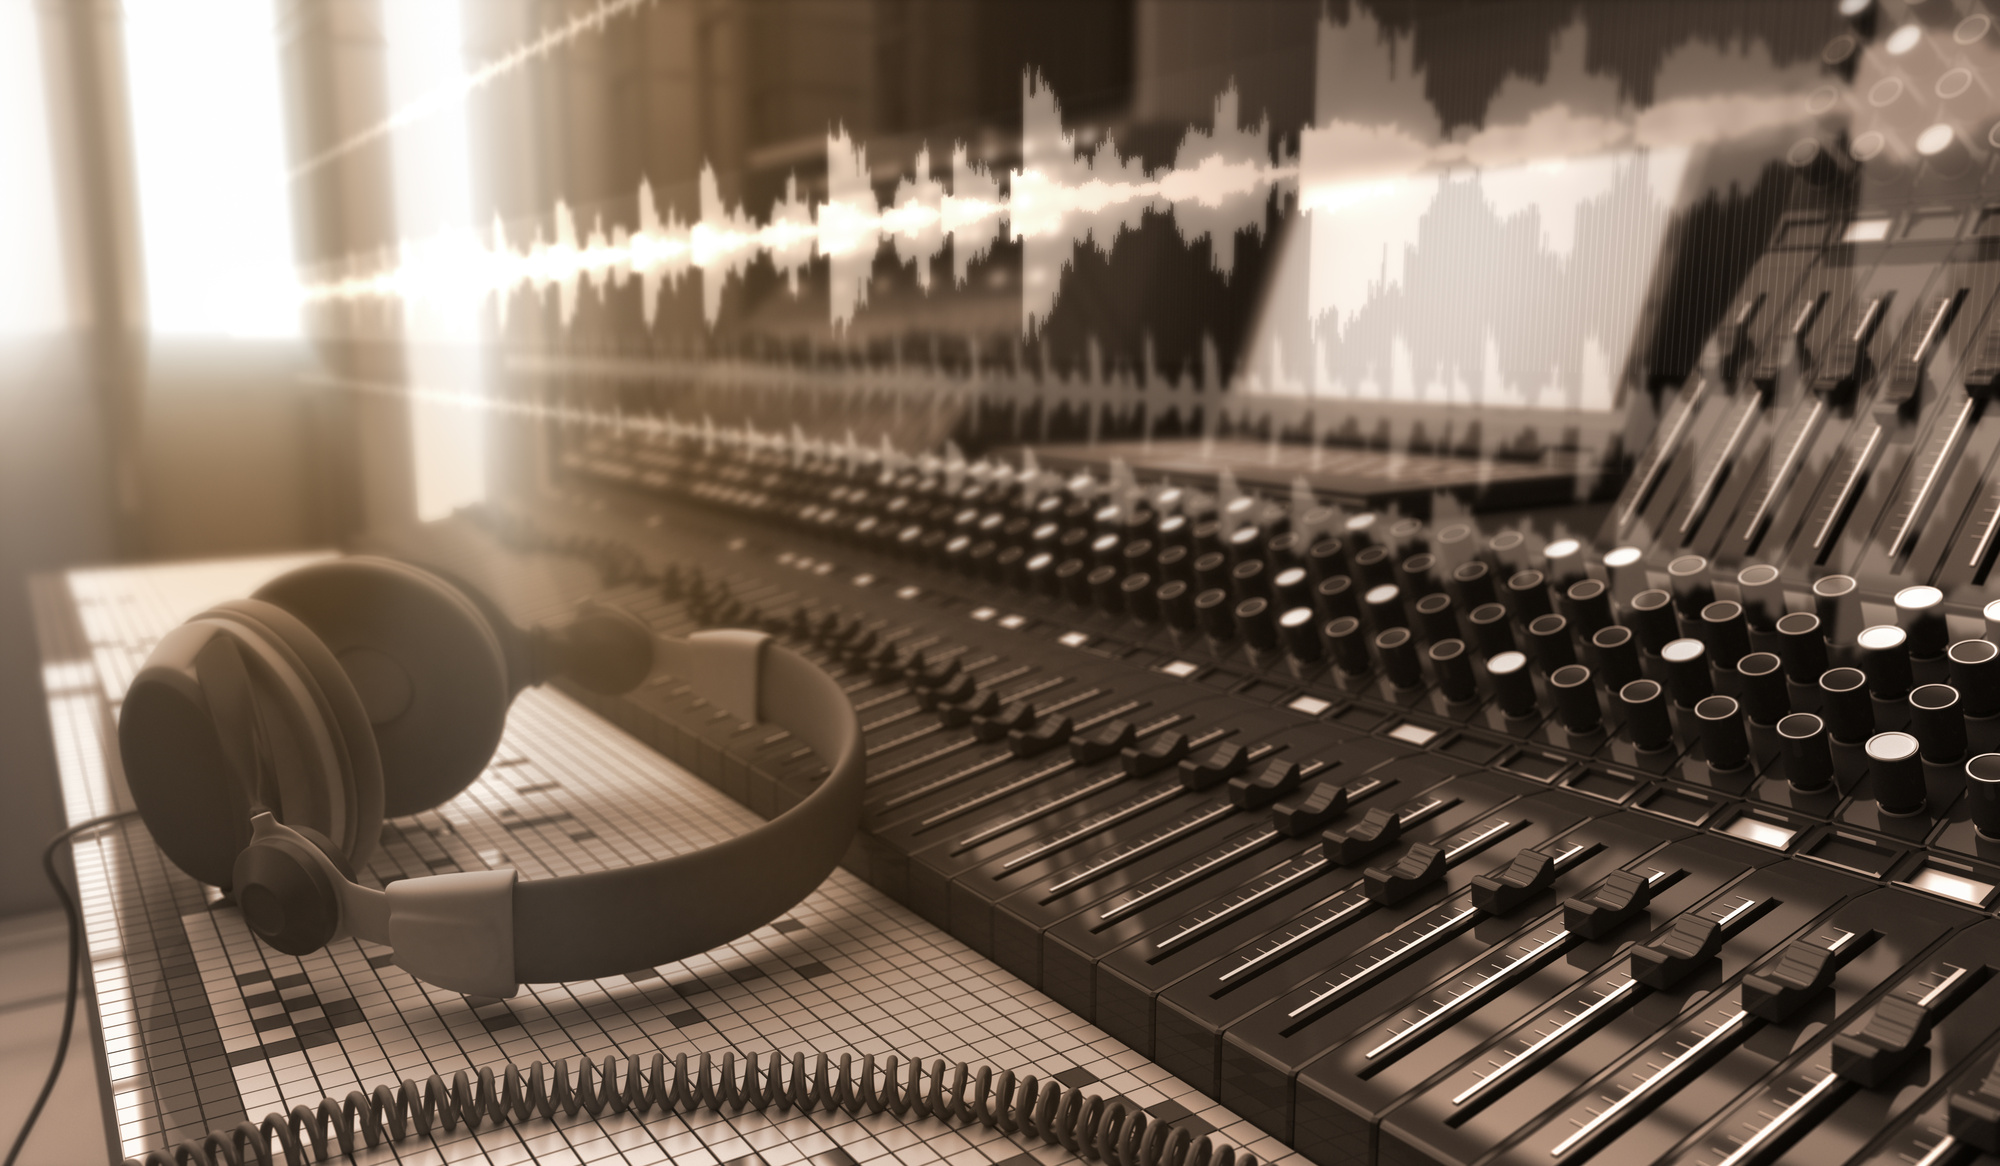 How to Mix Music: 7 Tips for Beginners